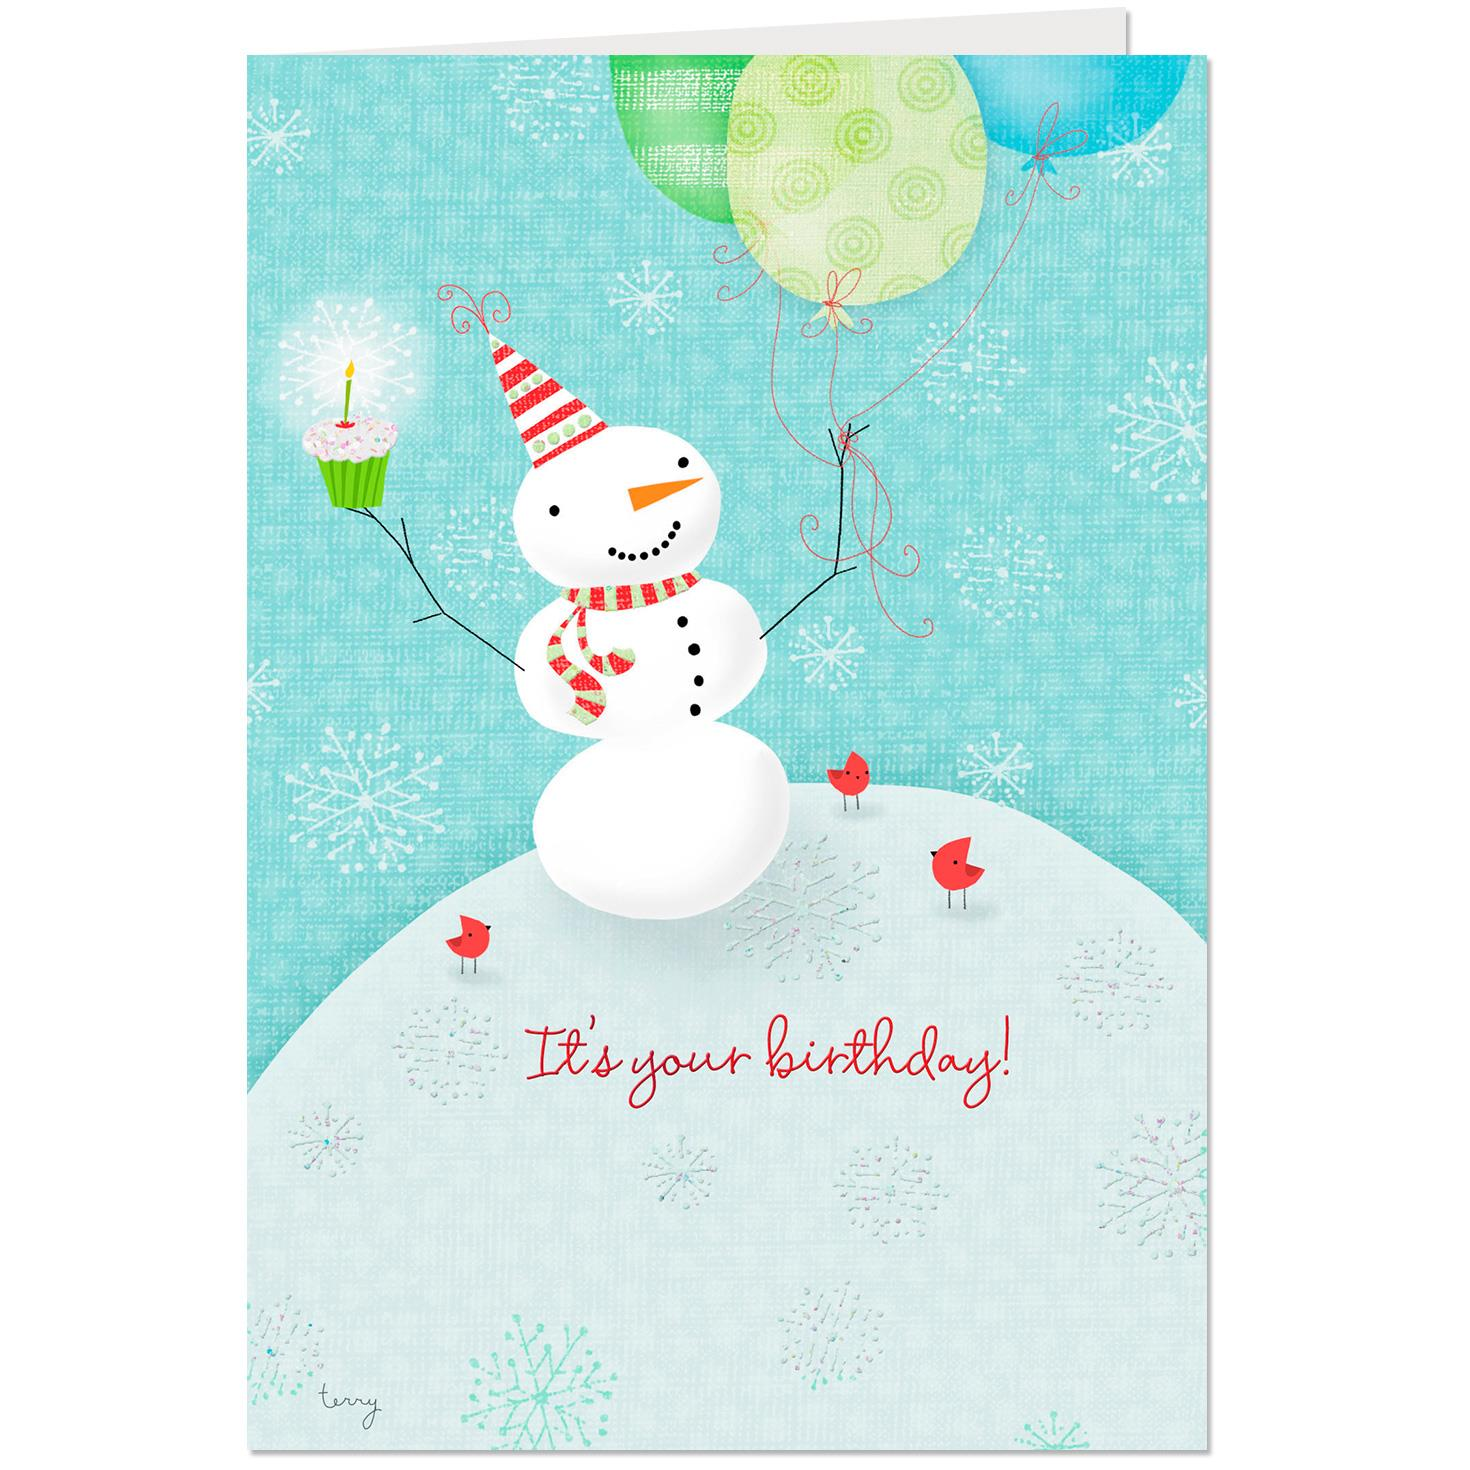 Snowman With Party Hat Christmas Birthday Card - Greeting Cards - Hallmark